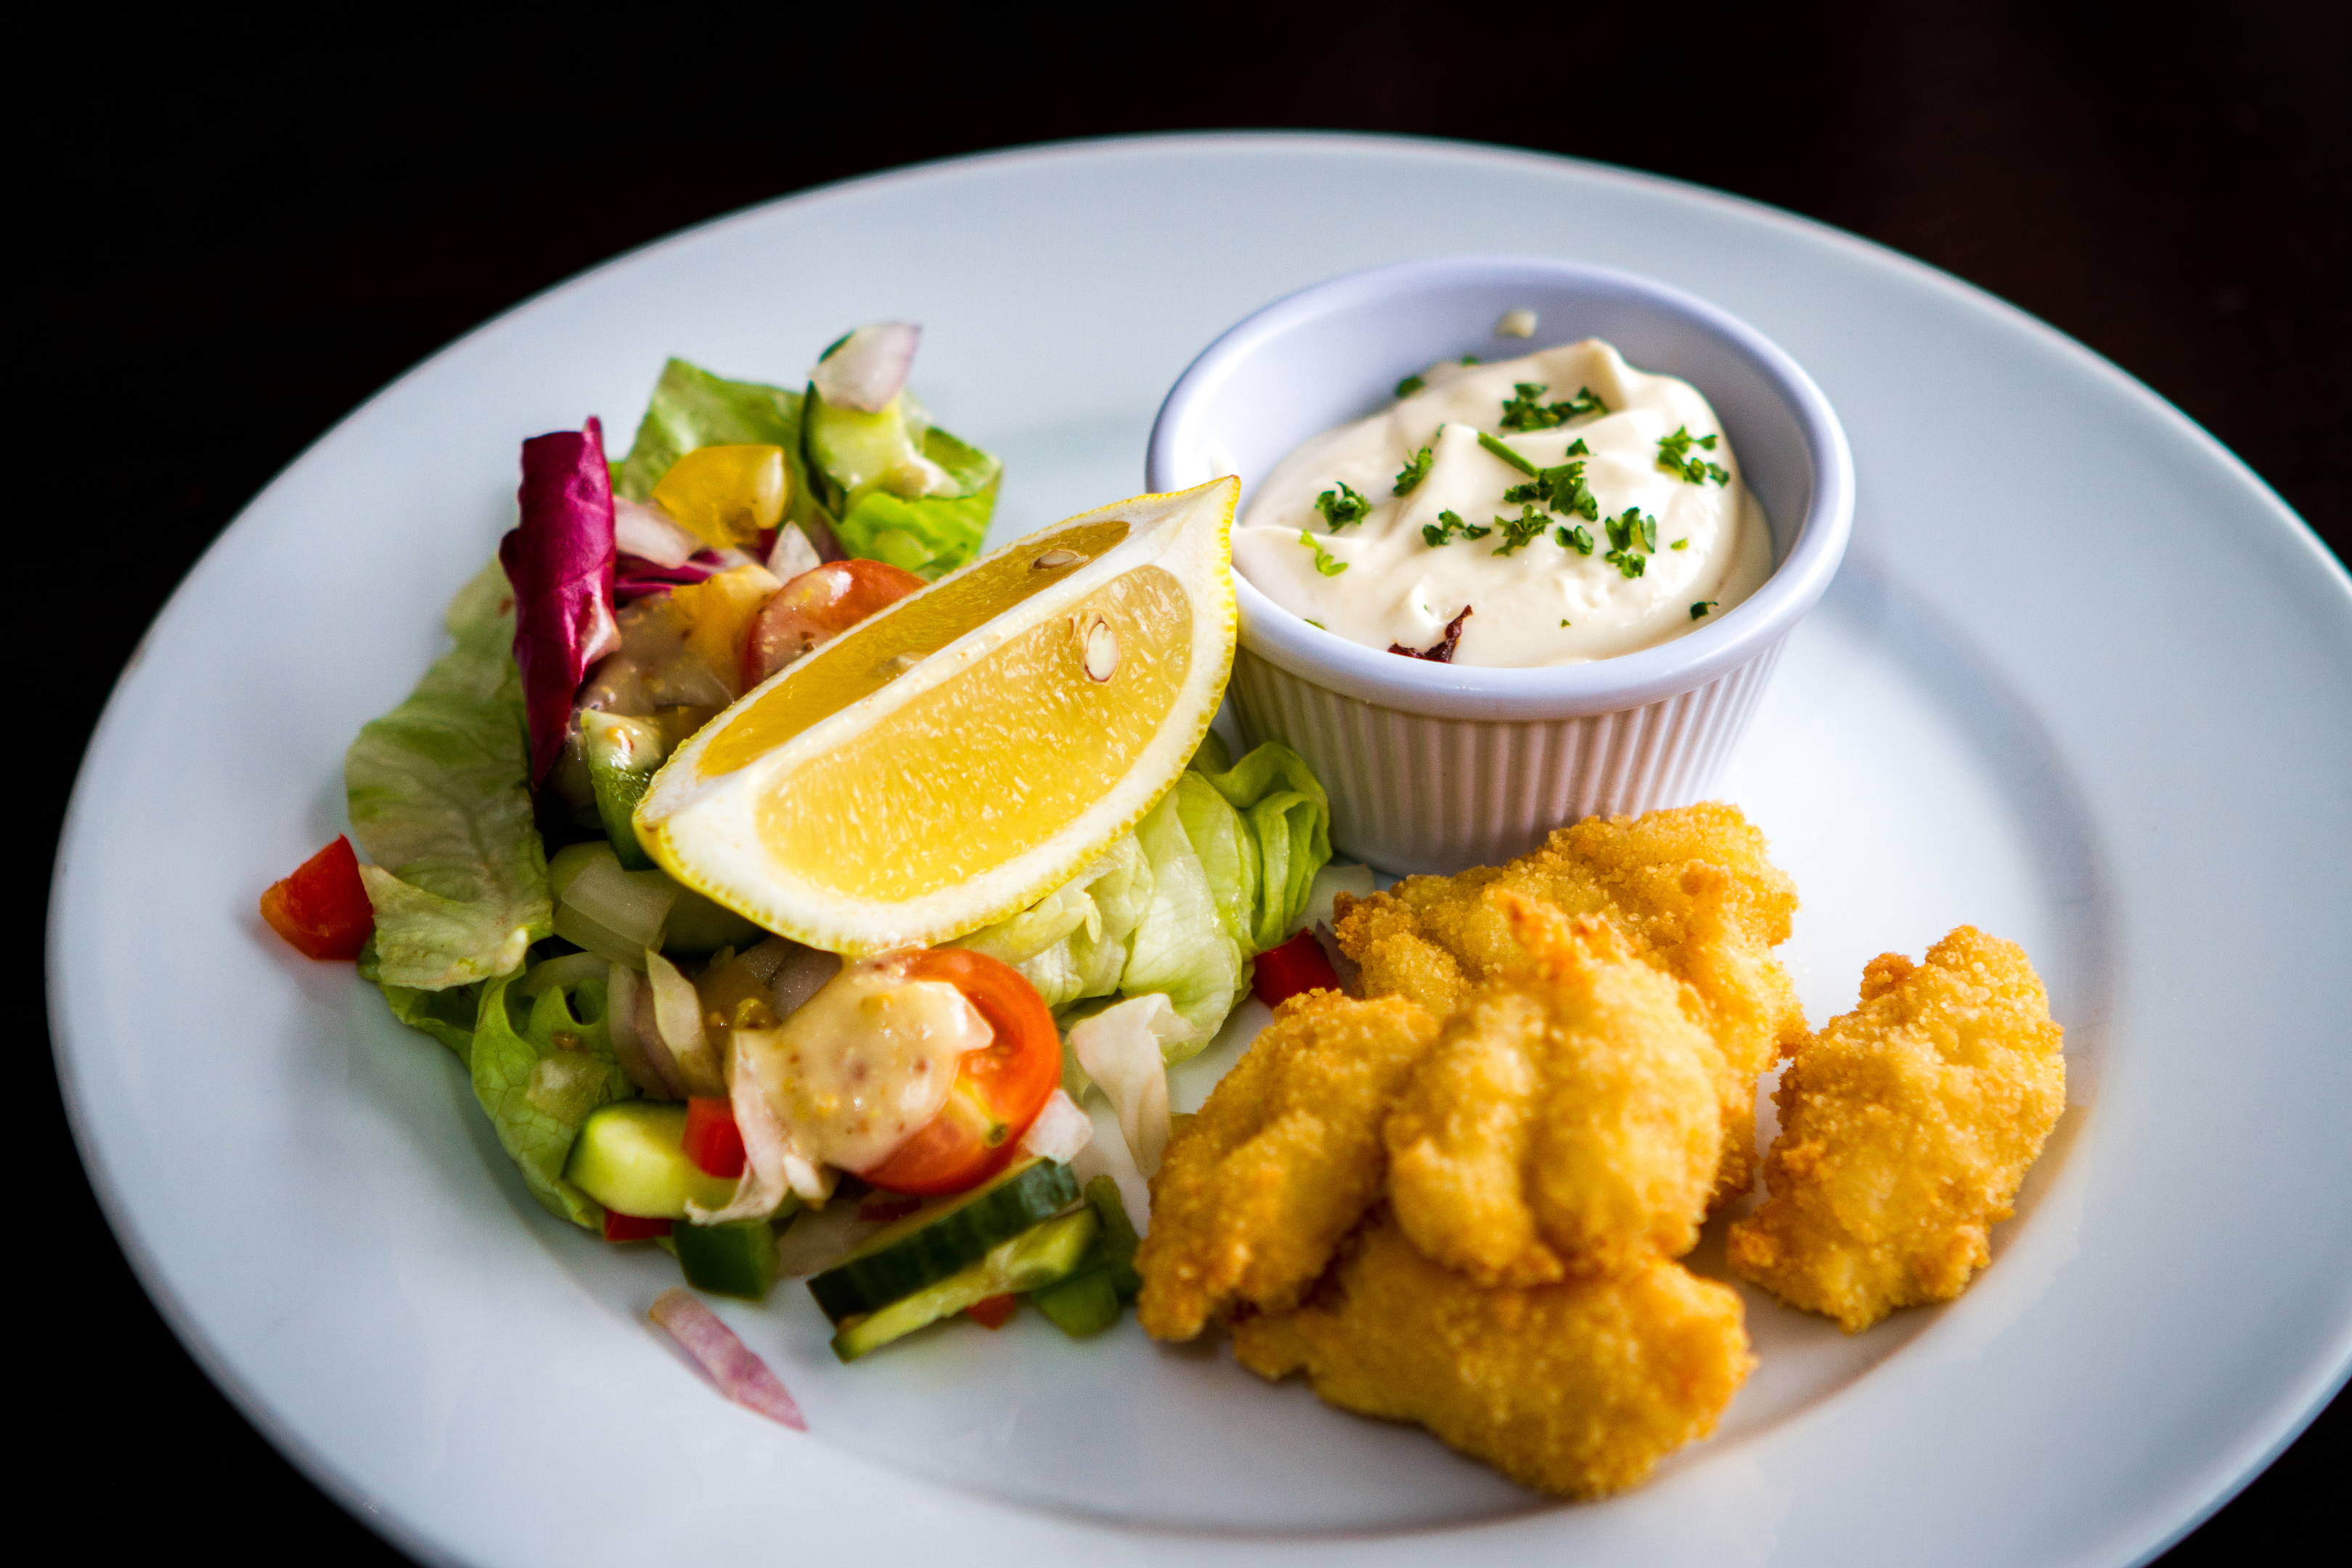 The Alyth Hotel's fresh scampi tails coated in homemade breadcrumbs served with a crisp salad and Aioli.